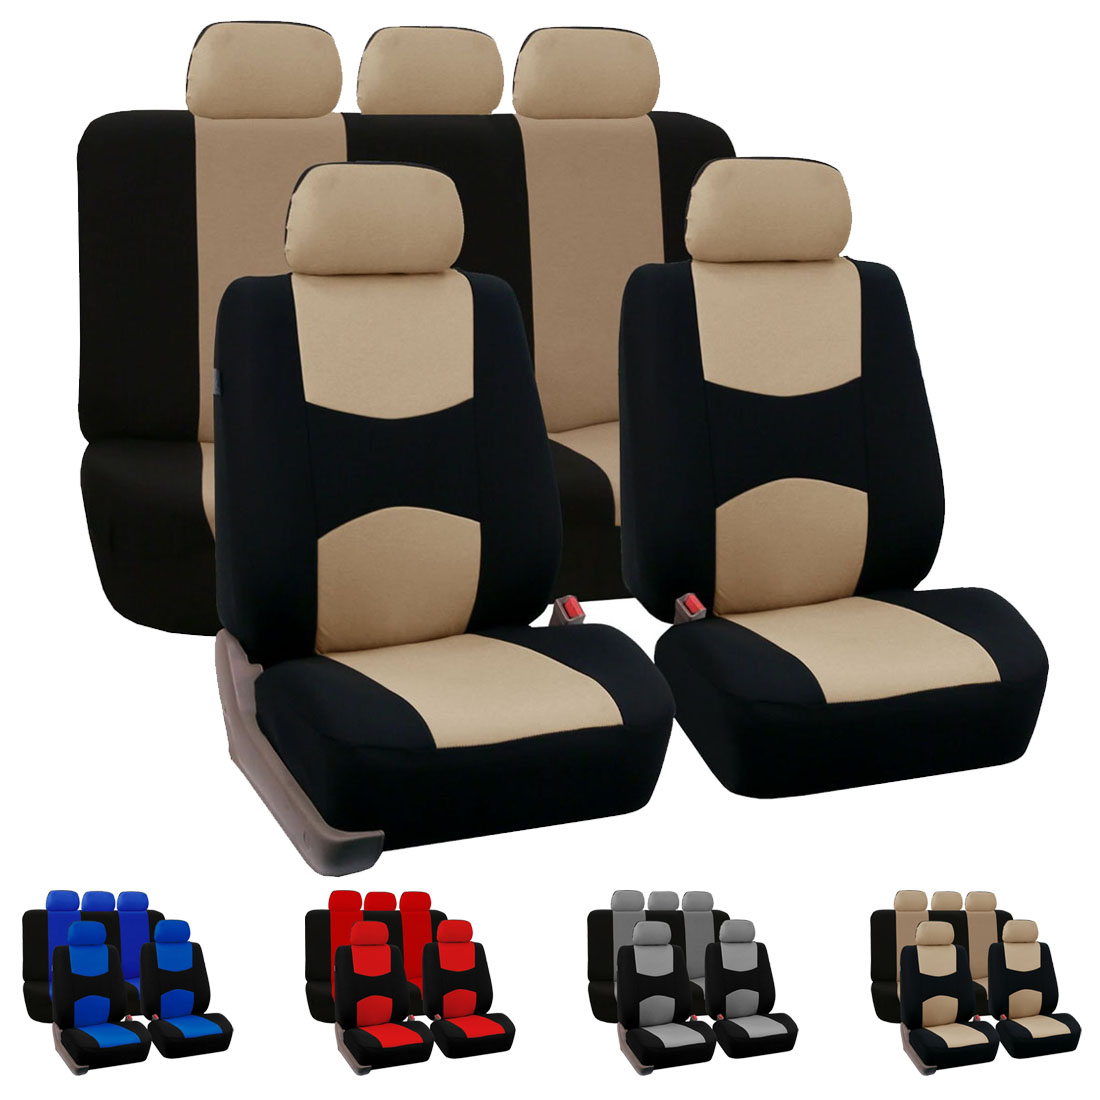 Dewtreetali Universal Front Back Car Seat Cover Full Set Polyester Car Seat Protector Four Seasons Interior Accessories dewtreetali car front seat cover sandwich four seasons universal seat protector cushion cover fit most auto car suv car styling